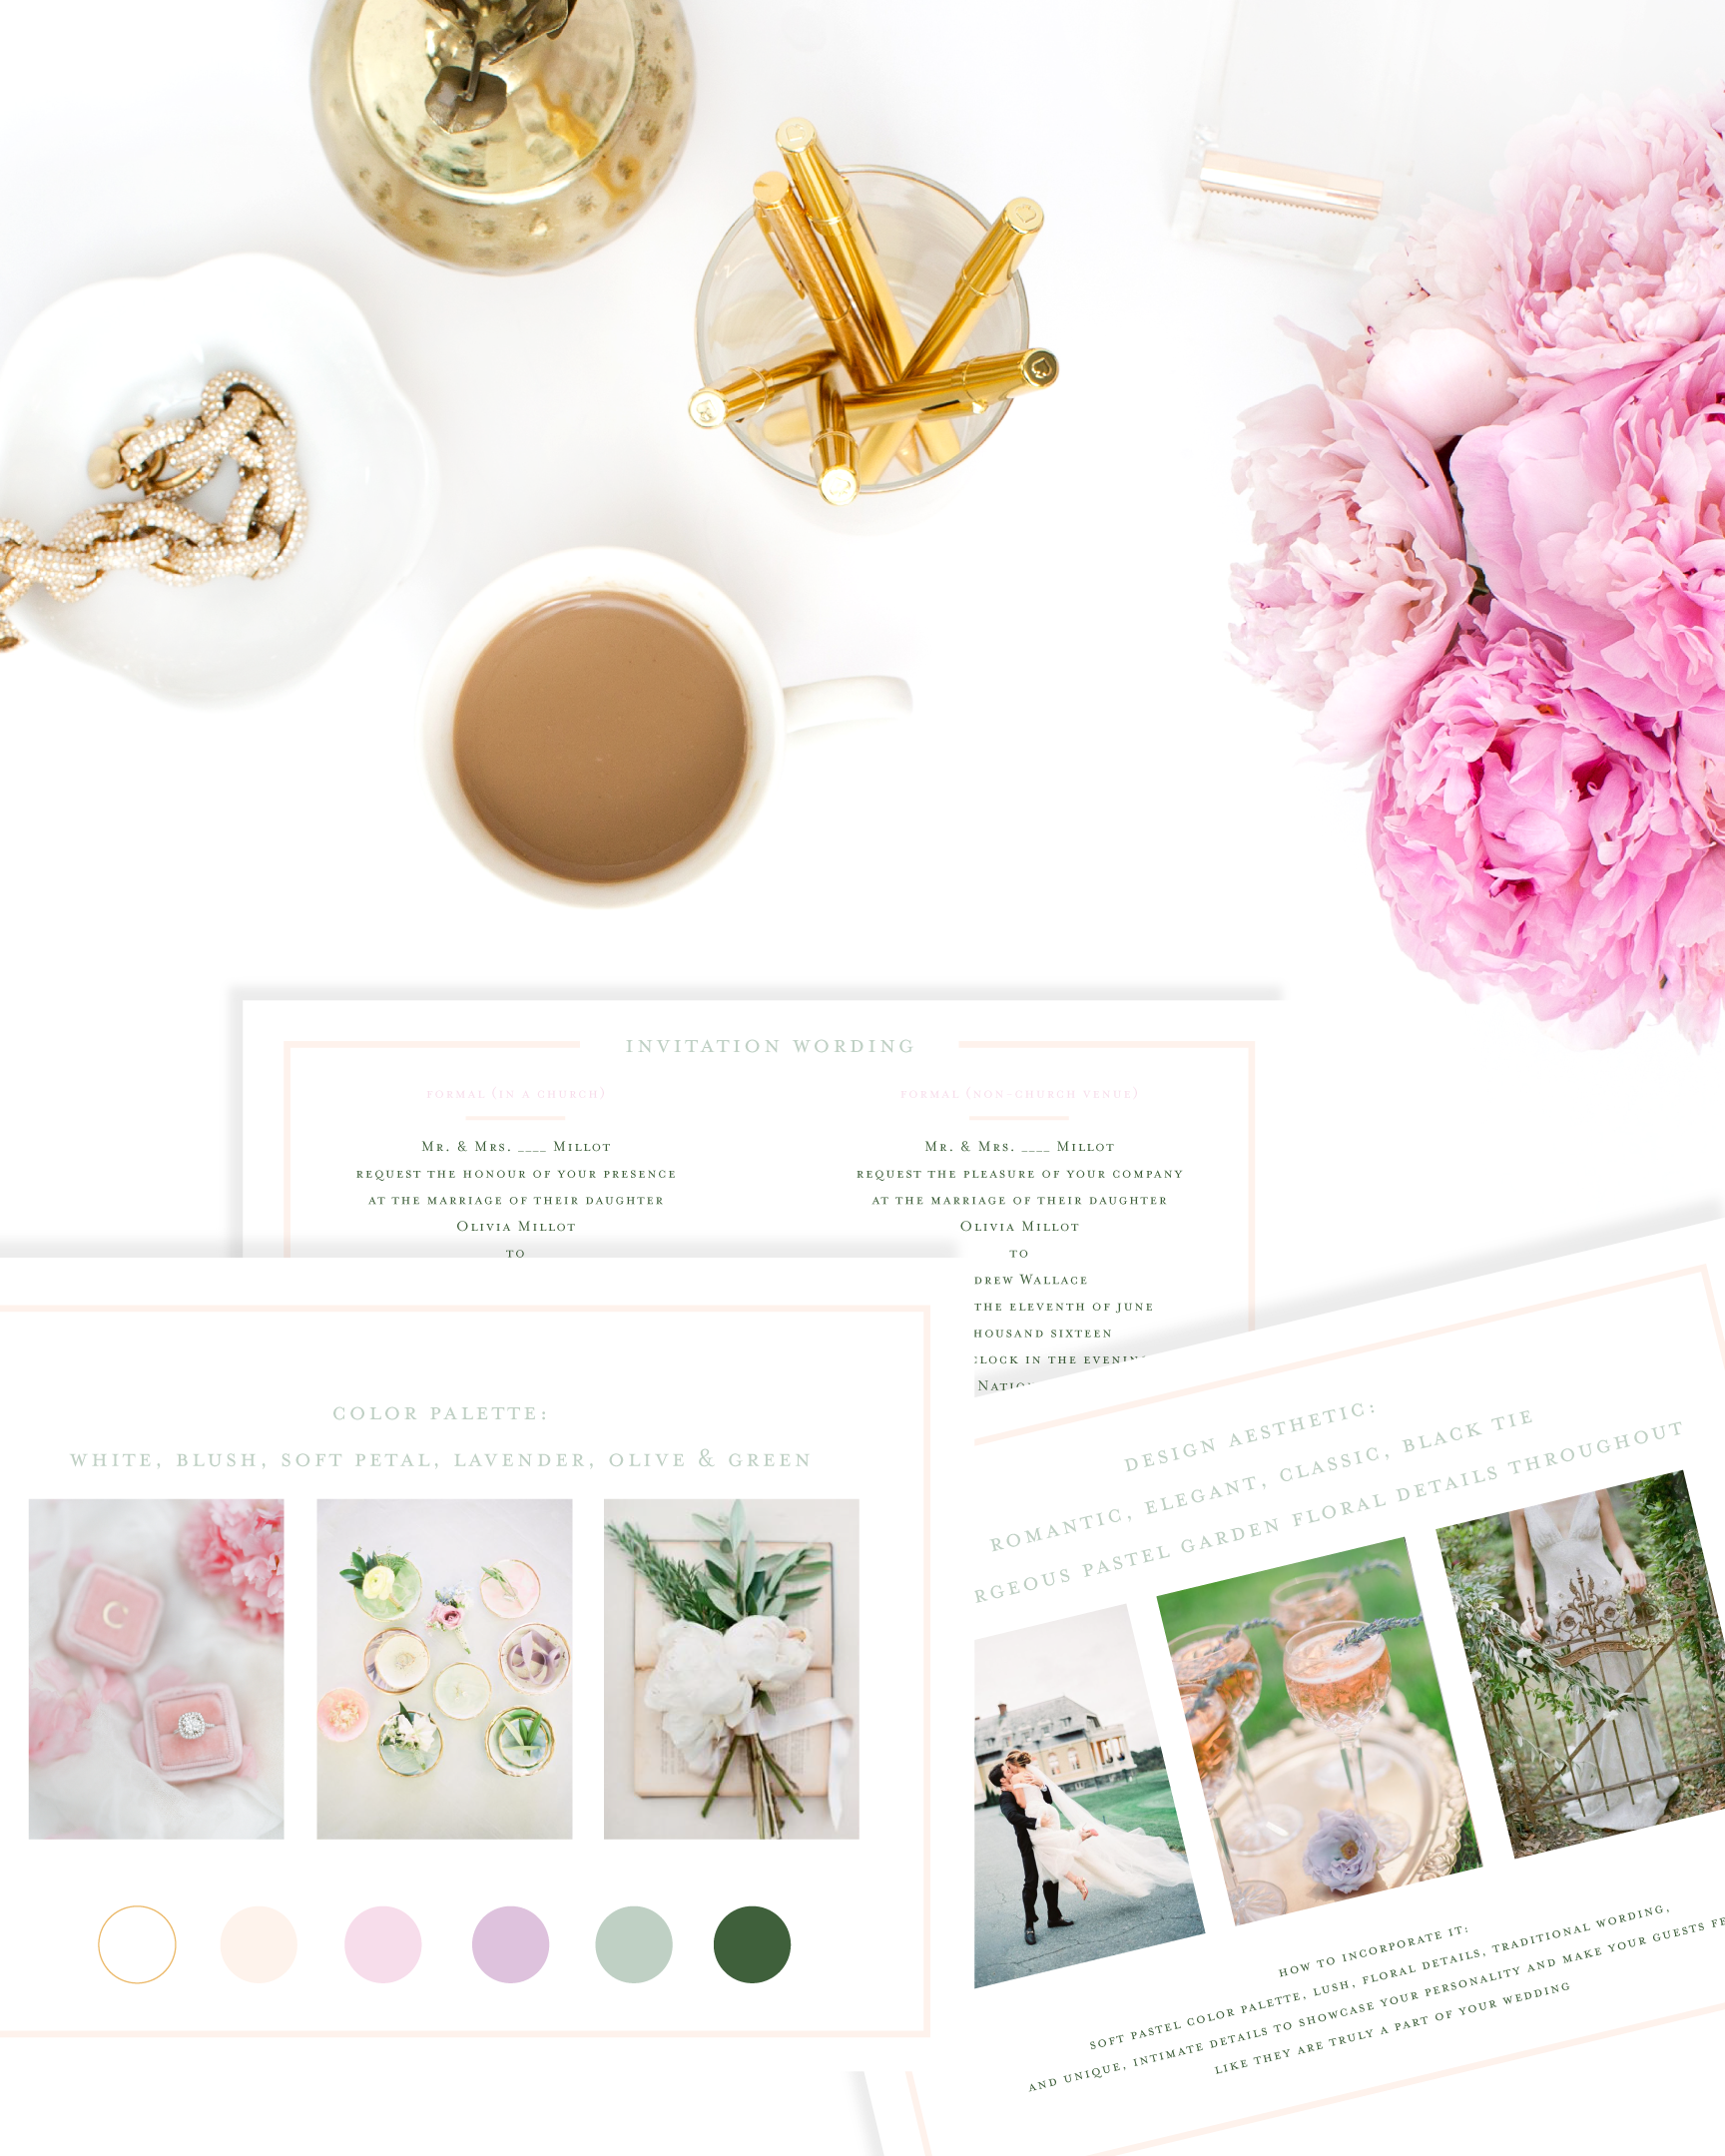 Custom Design Look Book for Wedding Invitations by Simply Jessica Marie